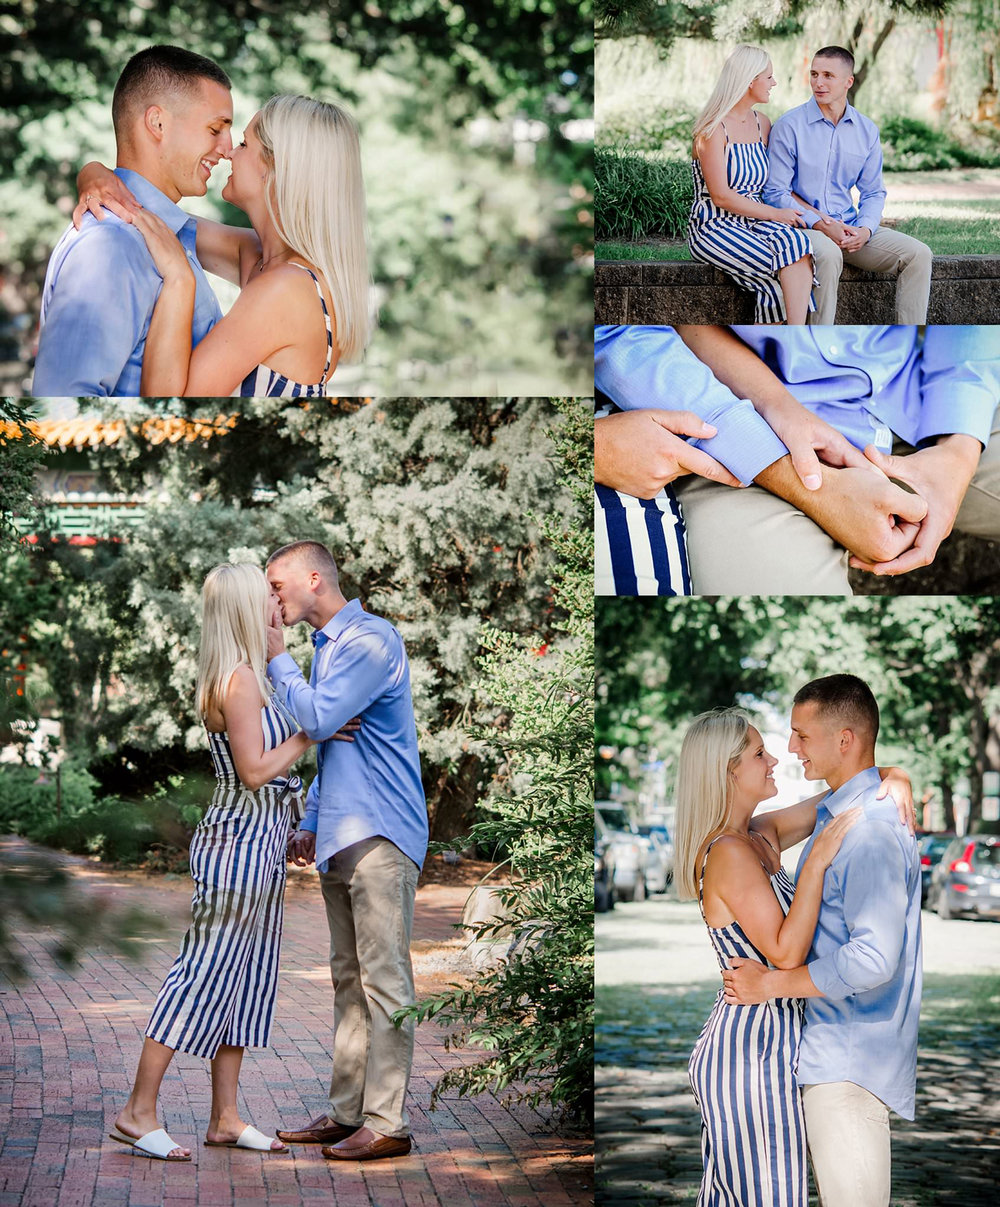 engagement-photos-downtown-norfolk-melissa-bliss-photography.jpg